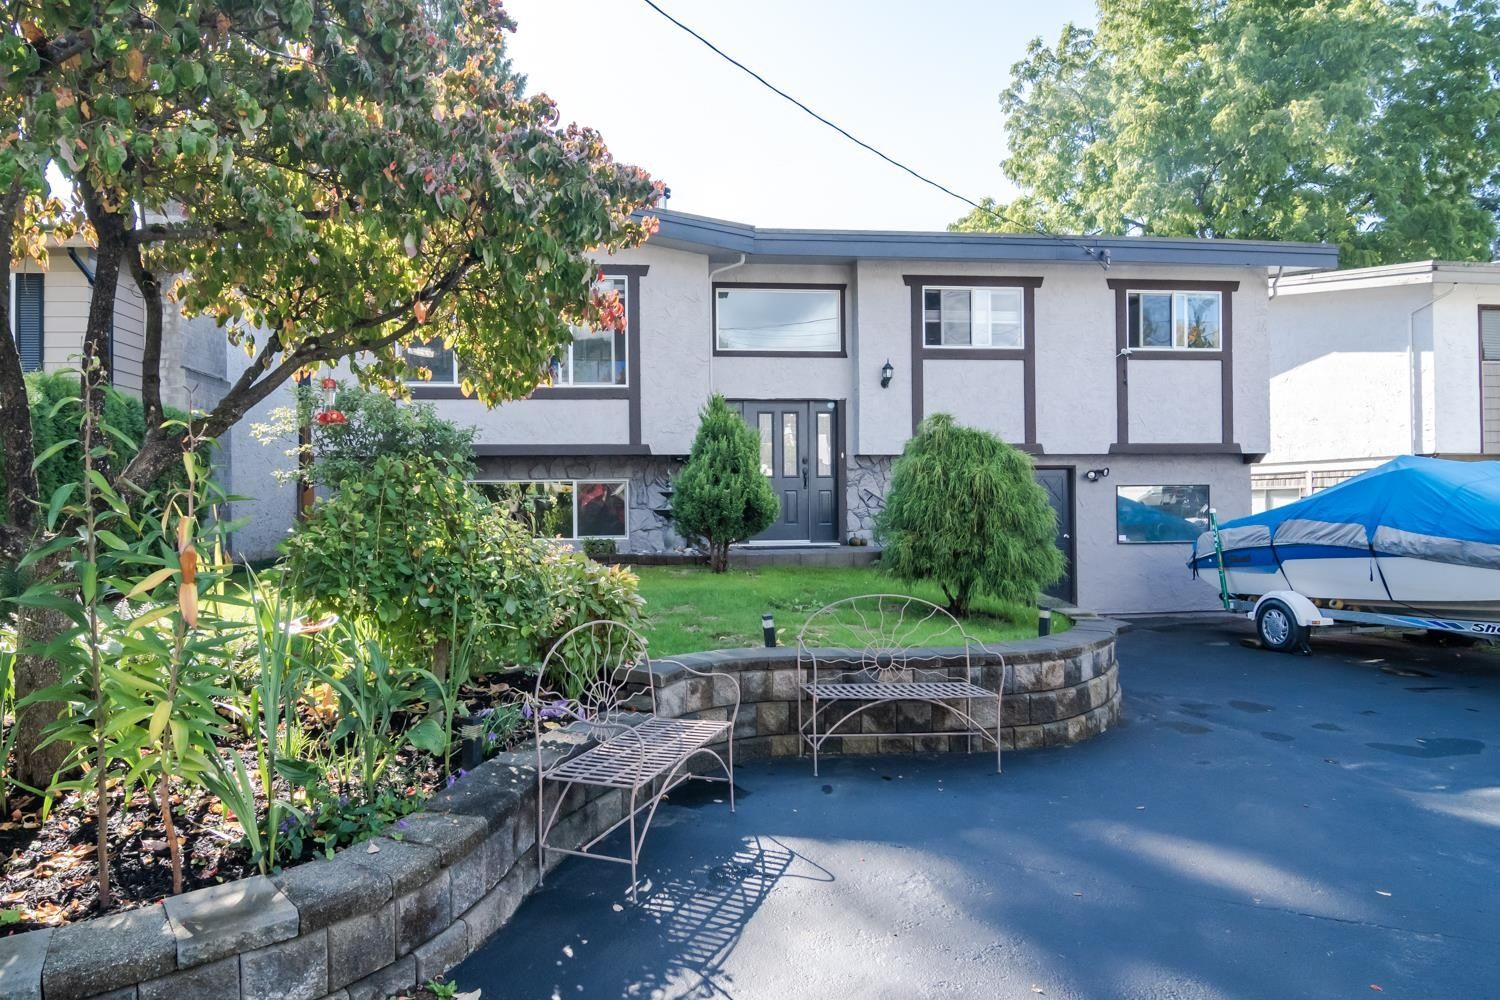 Main Photo: 32740 CRANE Avenue in Mission: Mission BC House for sale : MLS®# R2622660